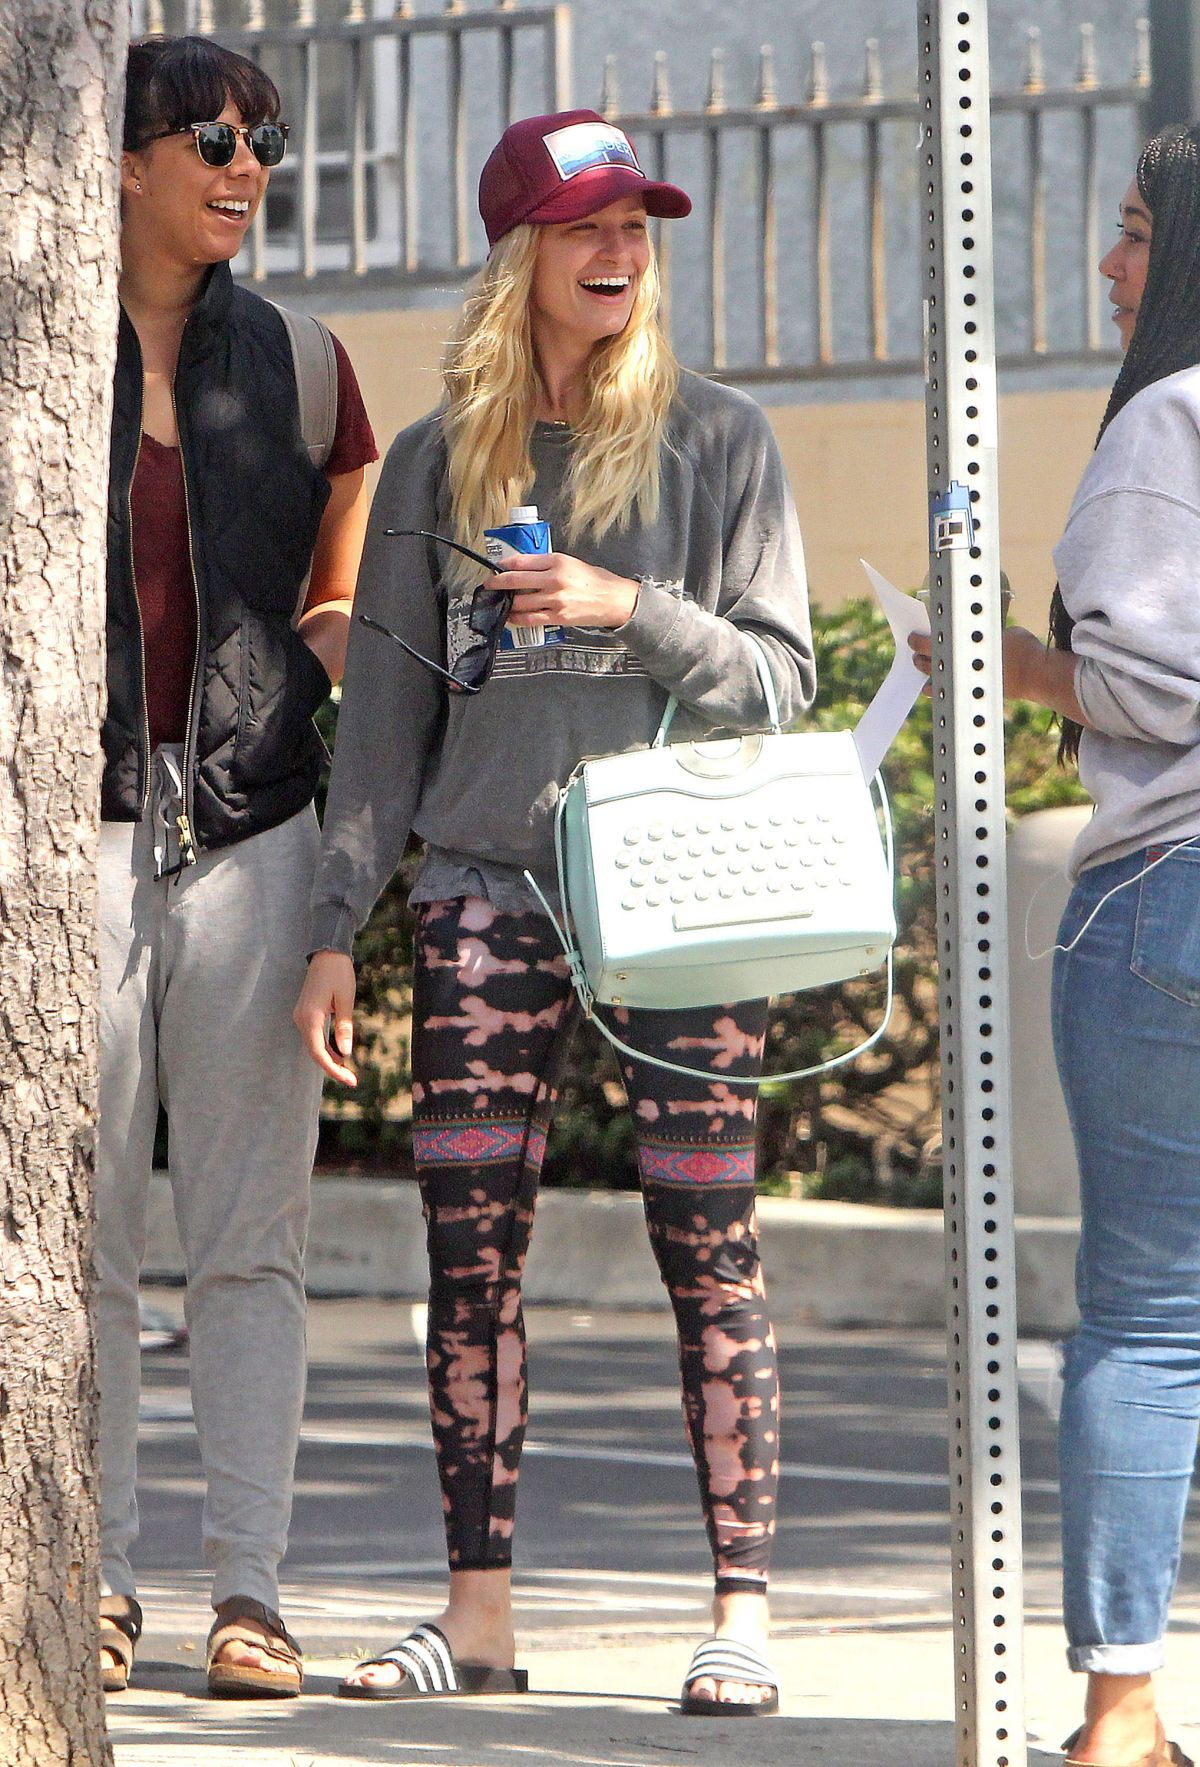 Beth behrs street style out in los angeles new pics